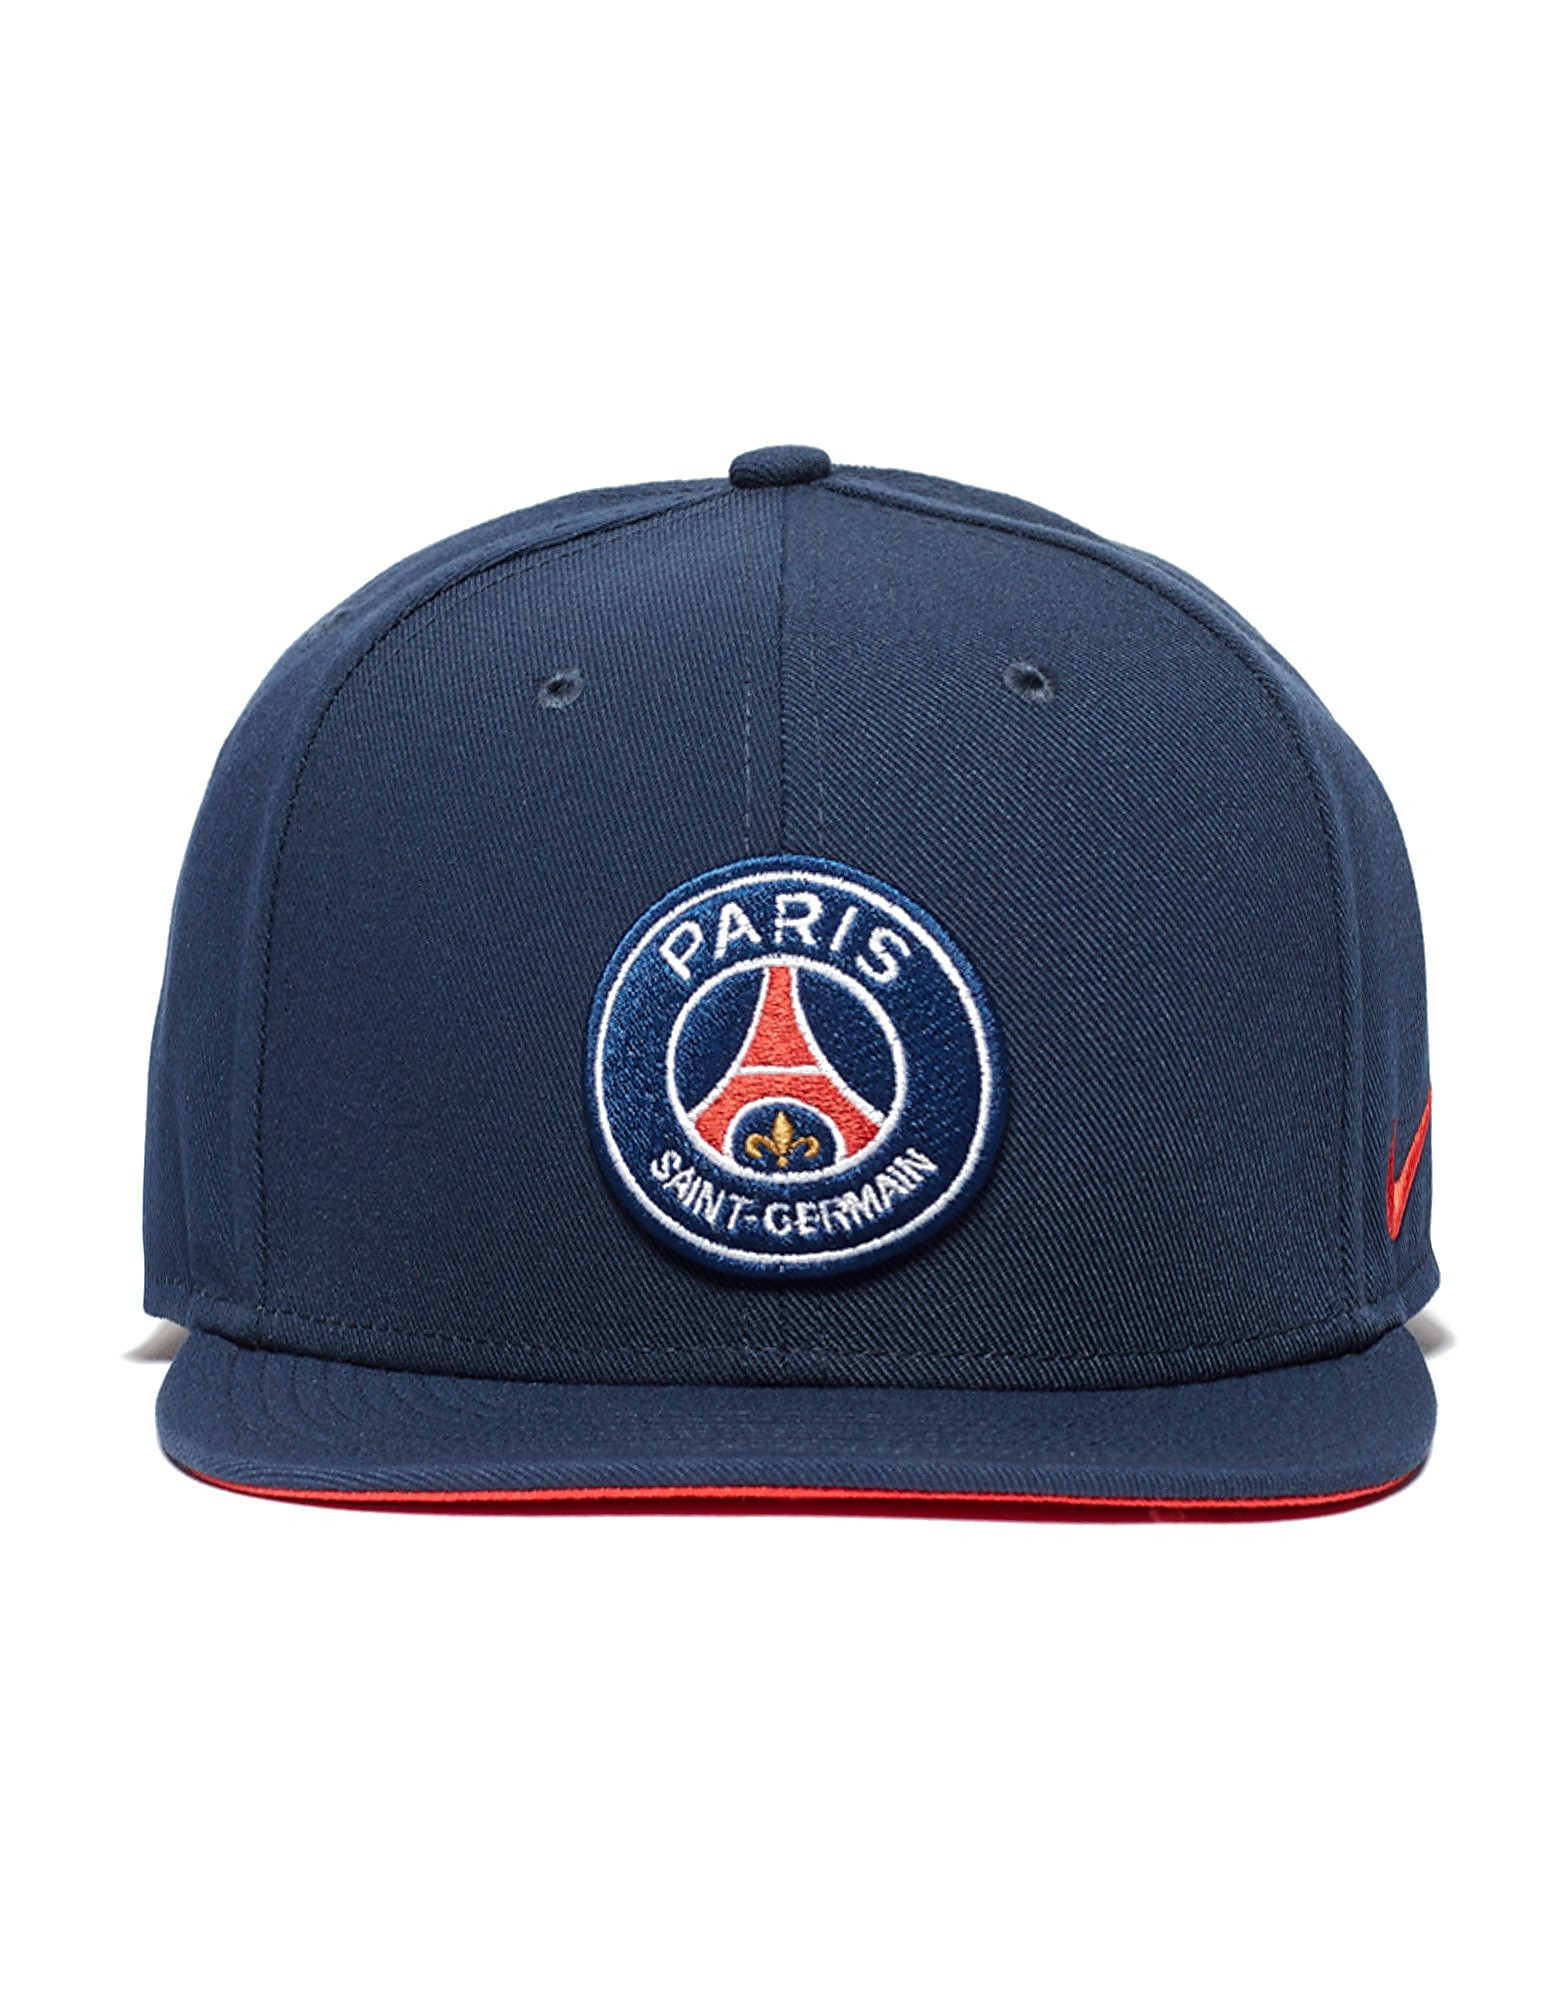 Nike Paris Saint Germain Pet